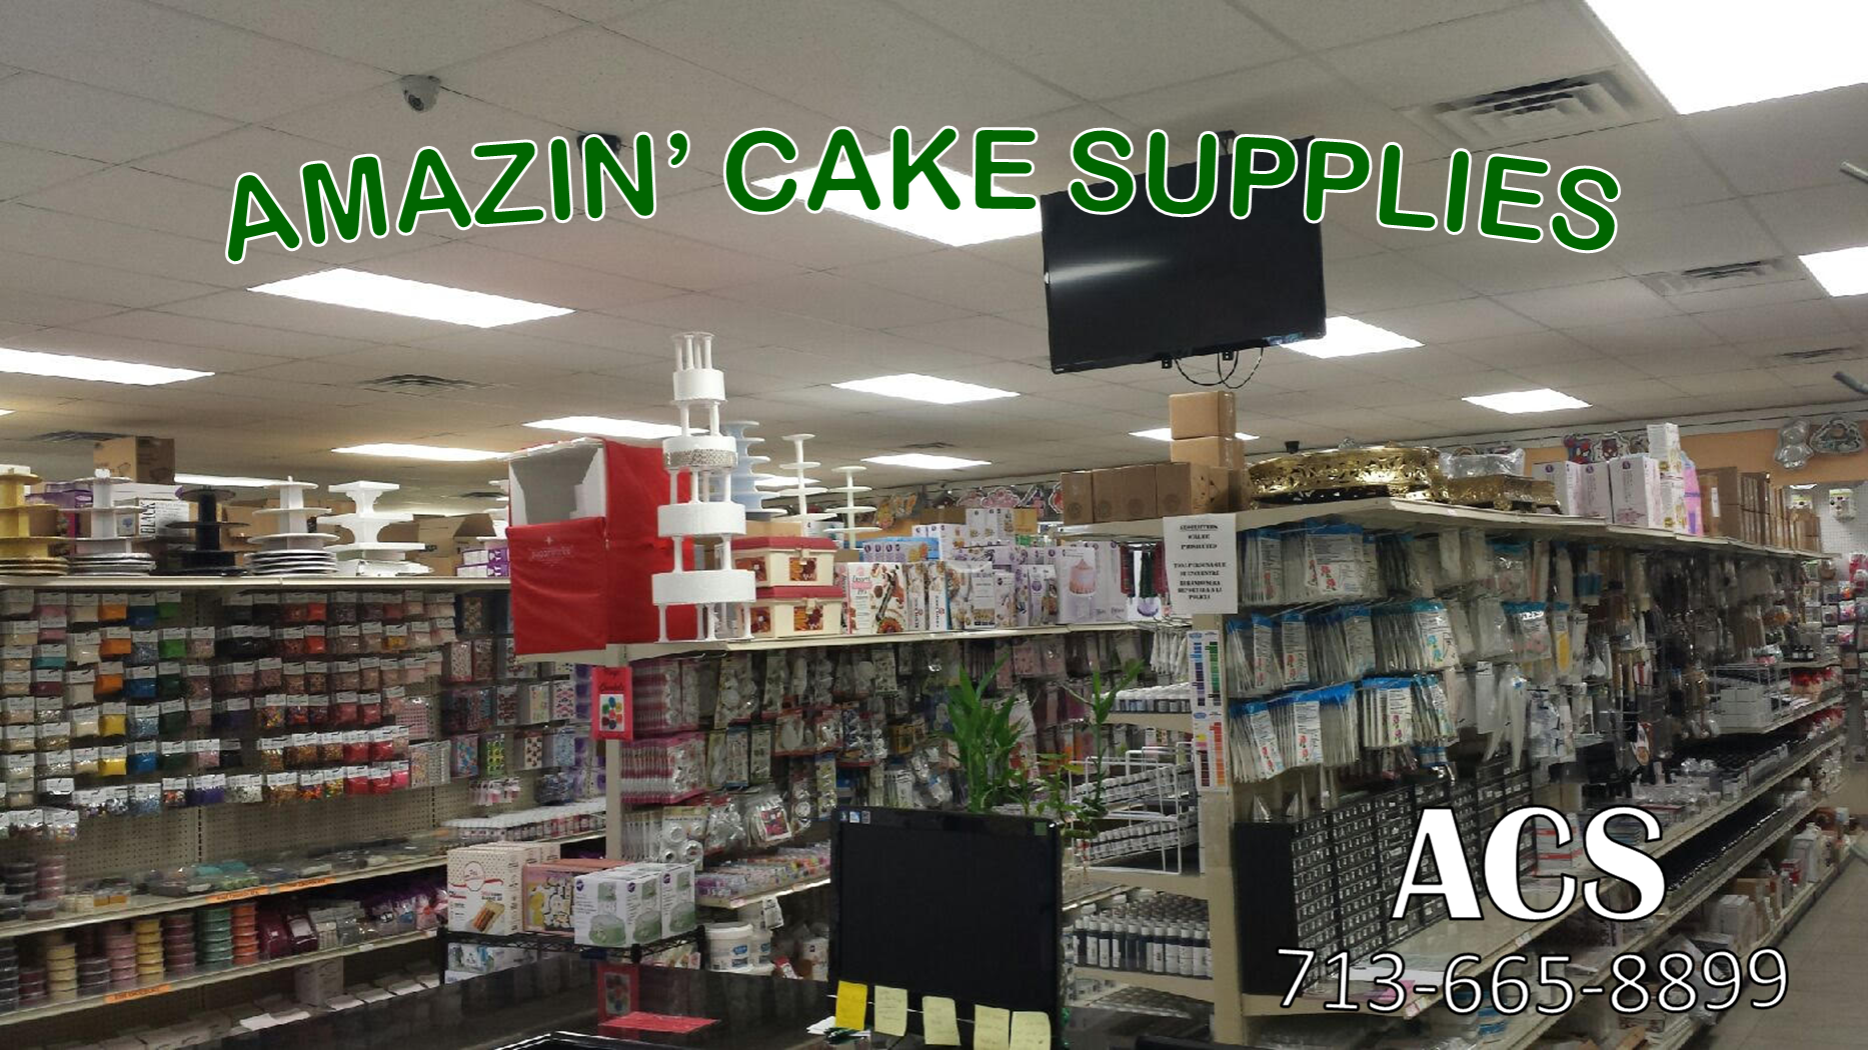 Amazing cake supplies Decorating items shop near me